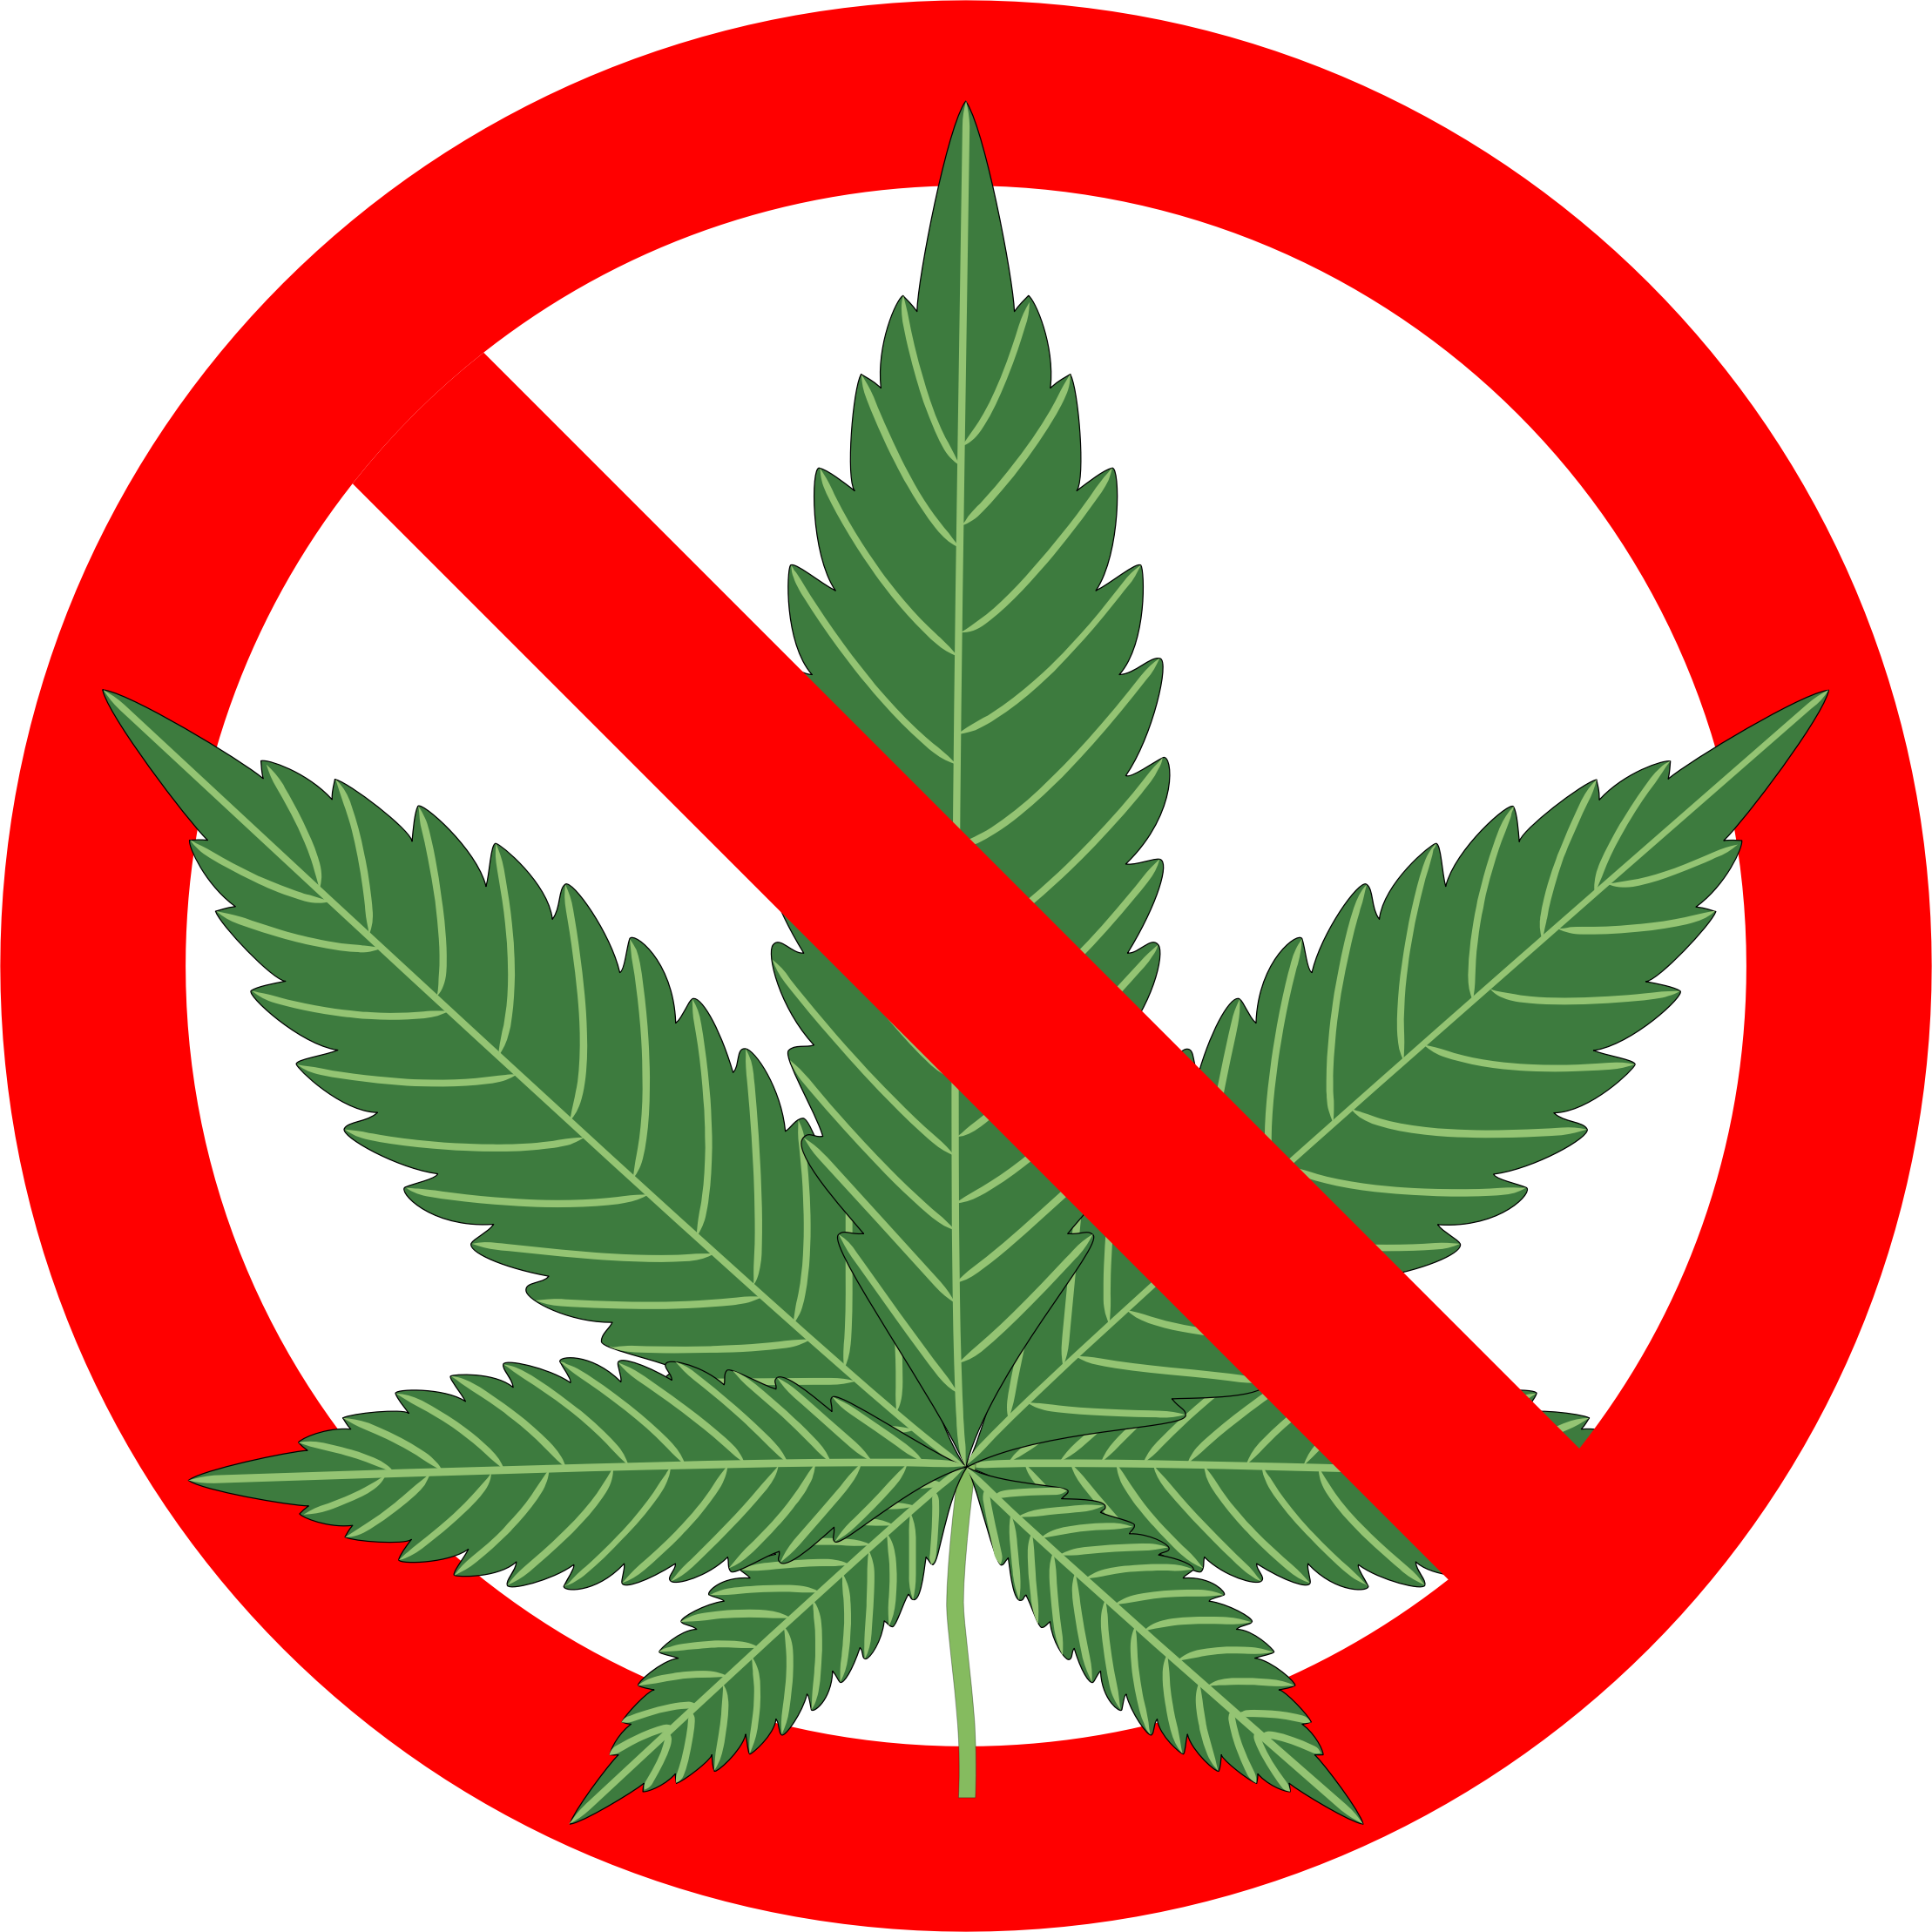 Weed cliparts banner free library Free Smoking Weed Cliparts, Download Free Clip Art, Free ... banner free library